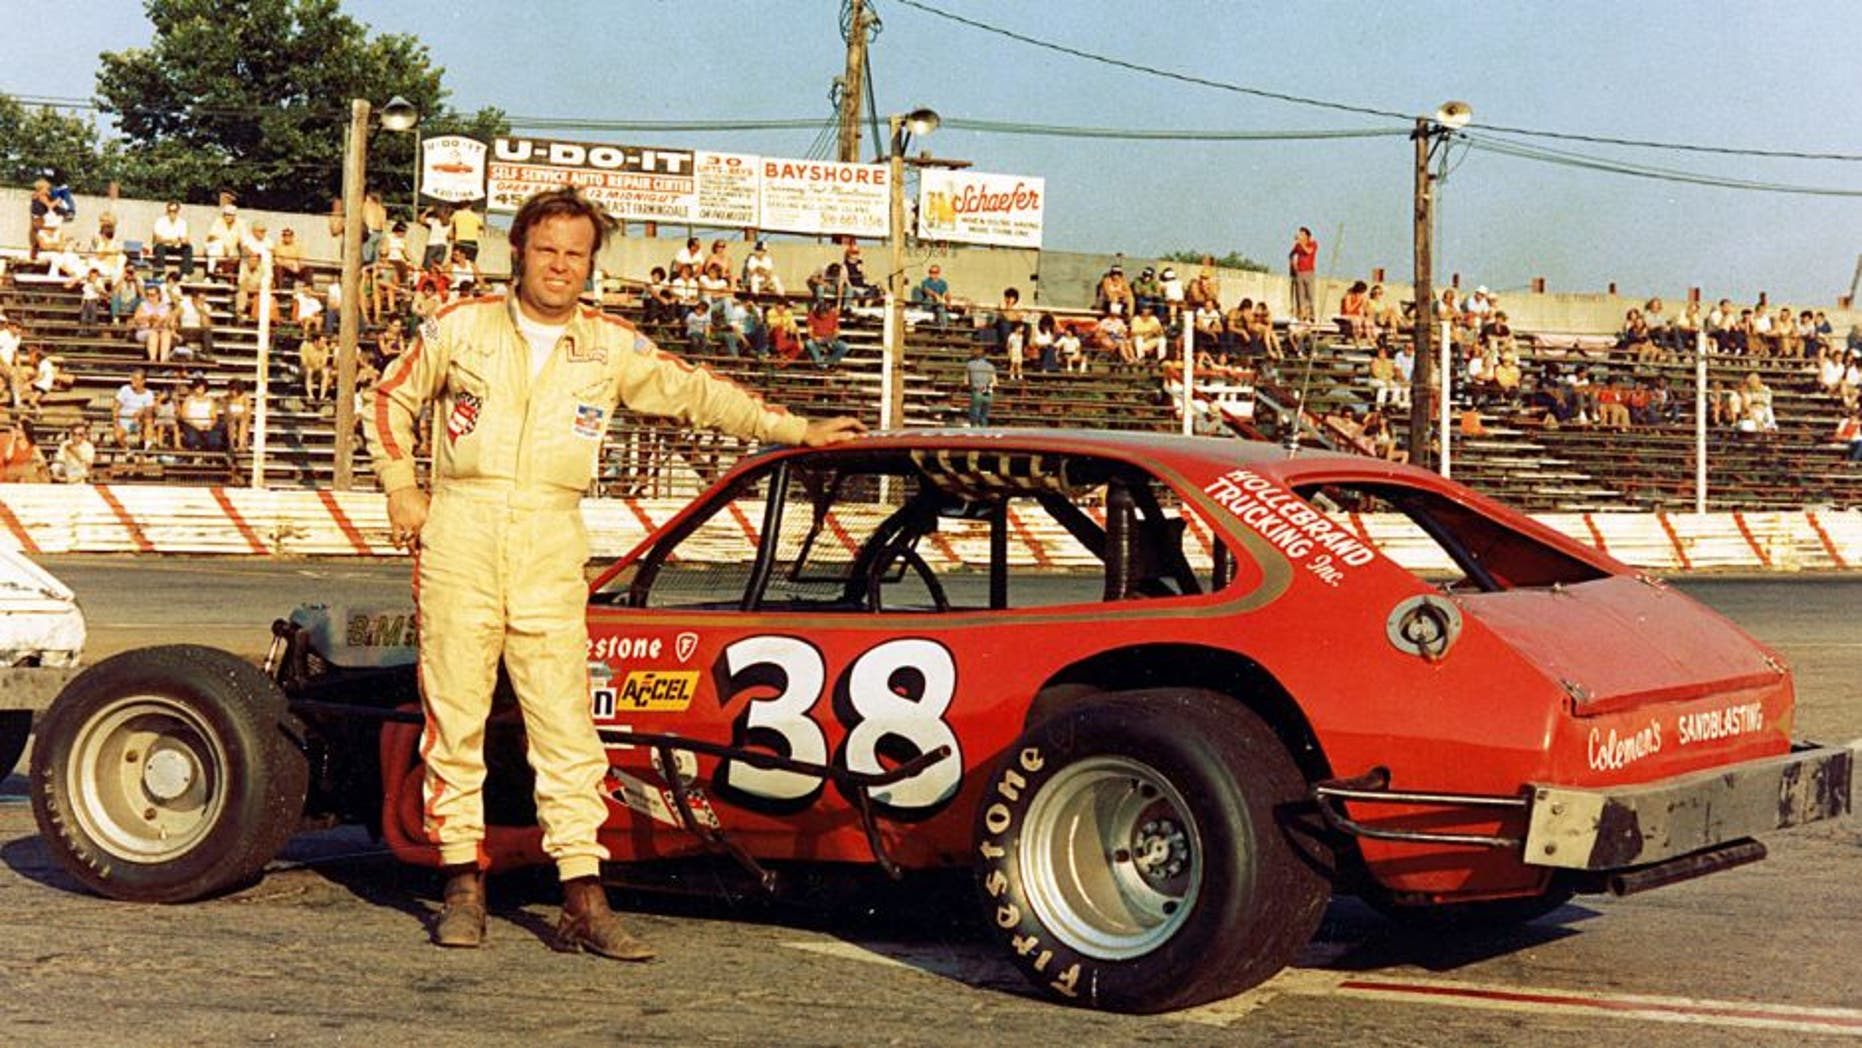 UNKNOWN ? 1971: Jerry Cook of Rome, NY, with one of the Pinto-bodied cars he used on his way to winning the 1971 NASCAR National Modified championship, the first of his six titles. (Photo by ISC Images & Archives via Getty Images)